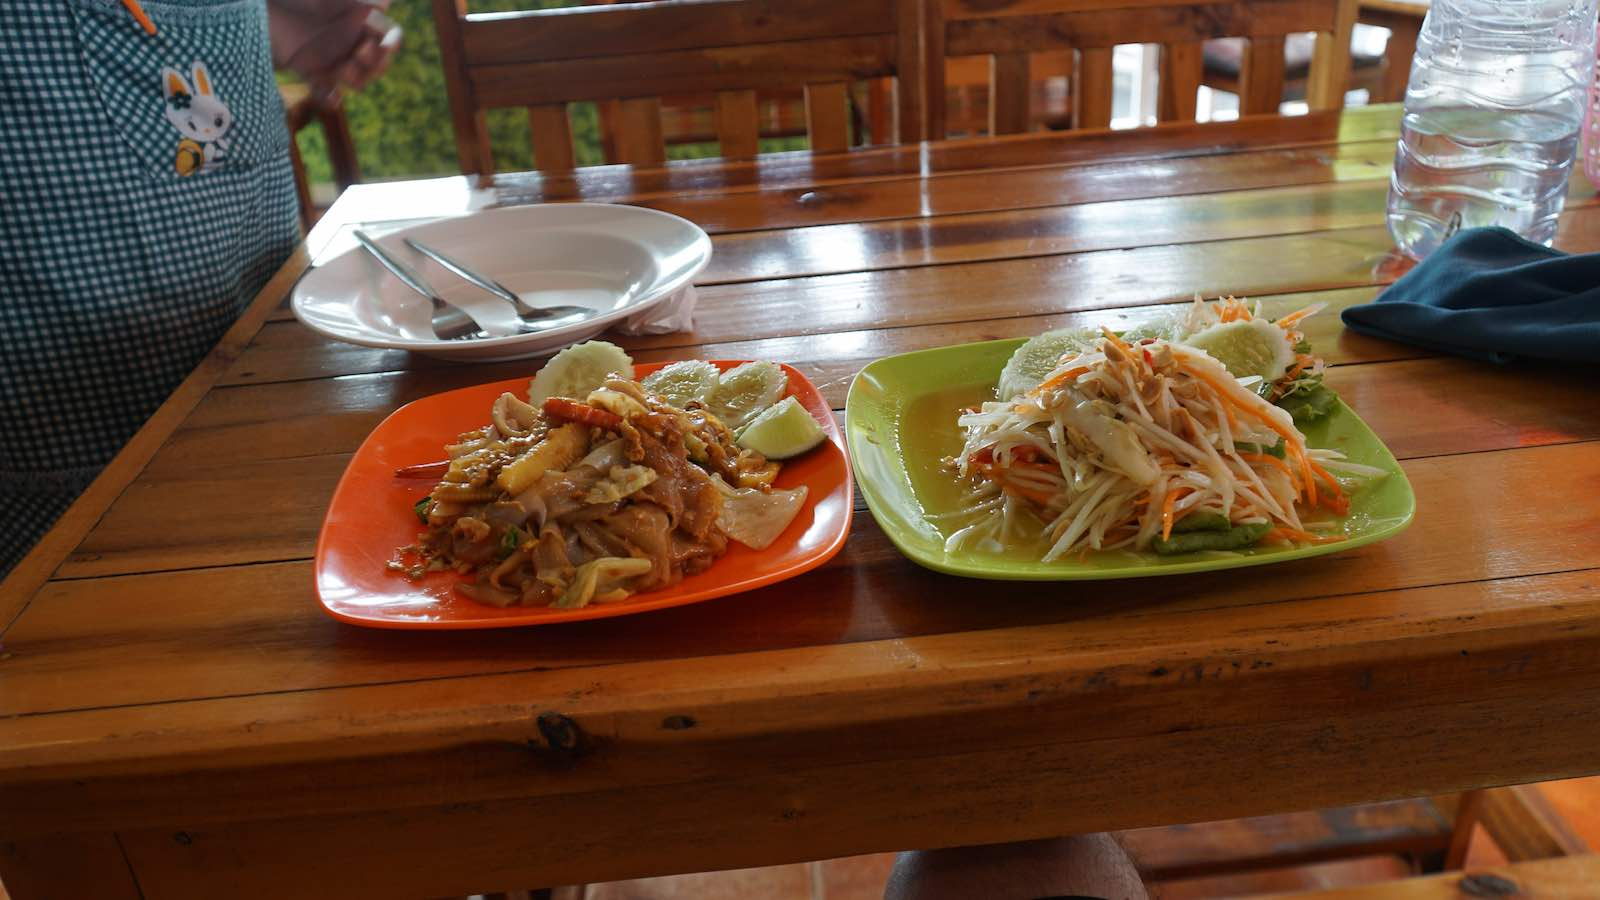 Aside from the beach I spent most of my time in Krabi resting in my hostel and eating pad thais, papaya salads, and mango sticky rice.